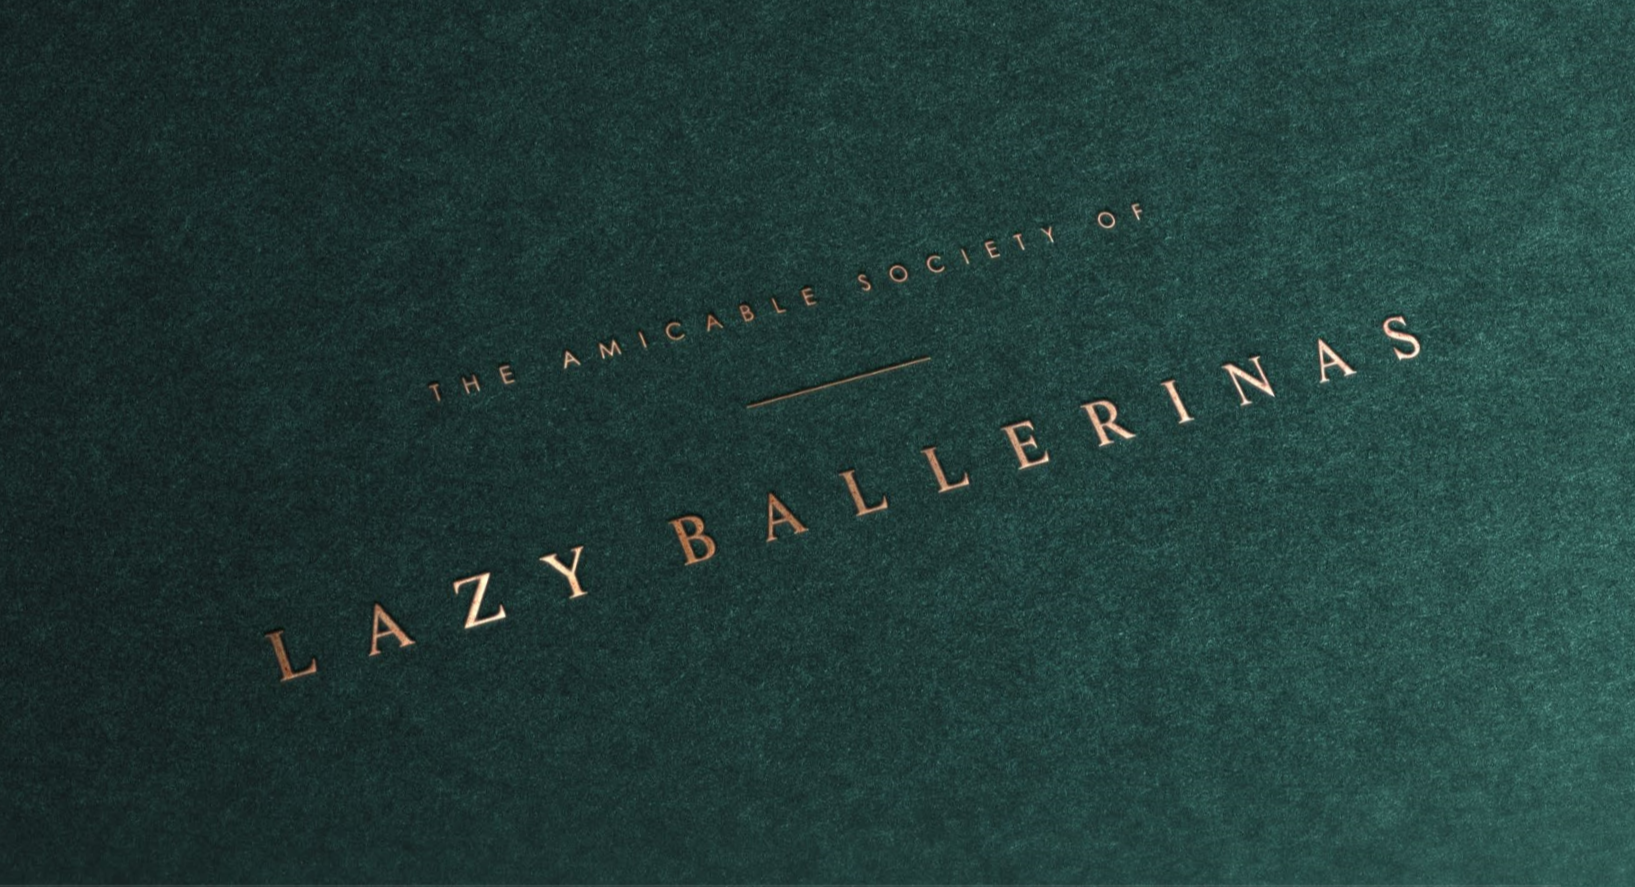 The Amicable Society of Lazy Ballerinas